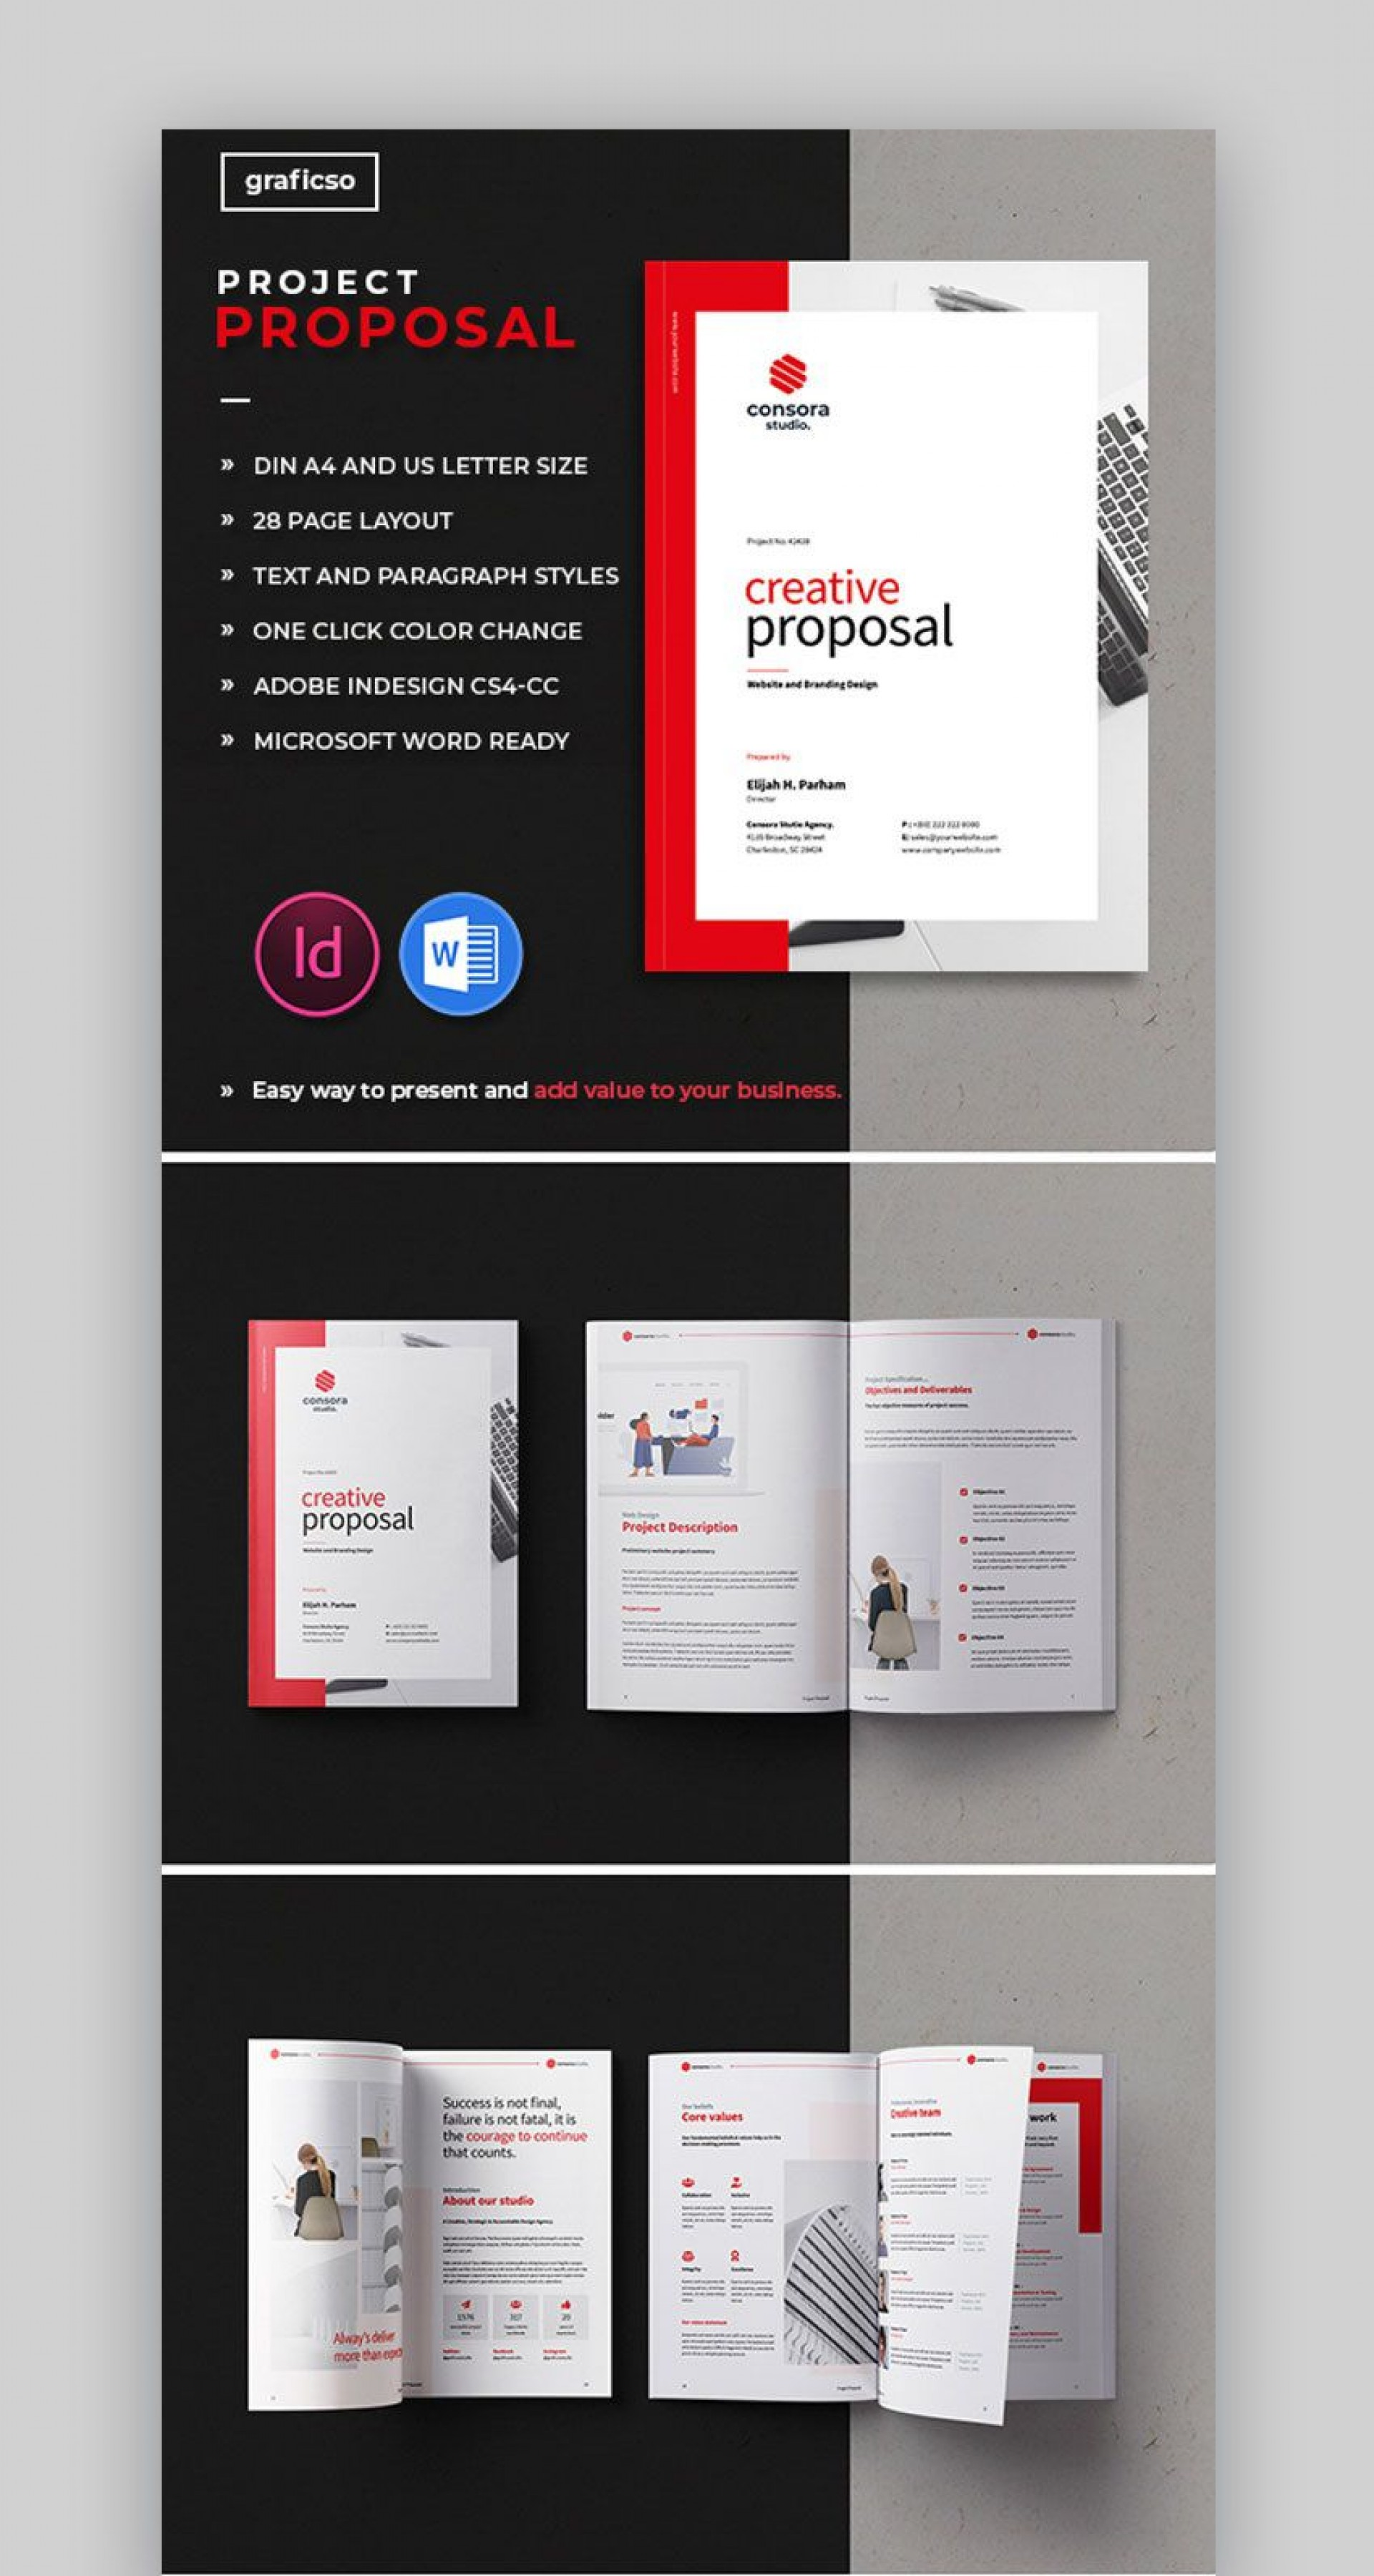 008 Fascinating Graphic Design Proposal Template Indesign  Free1920